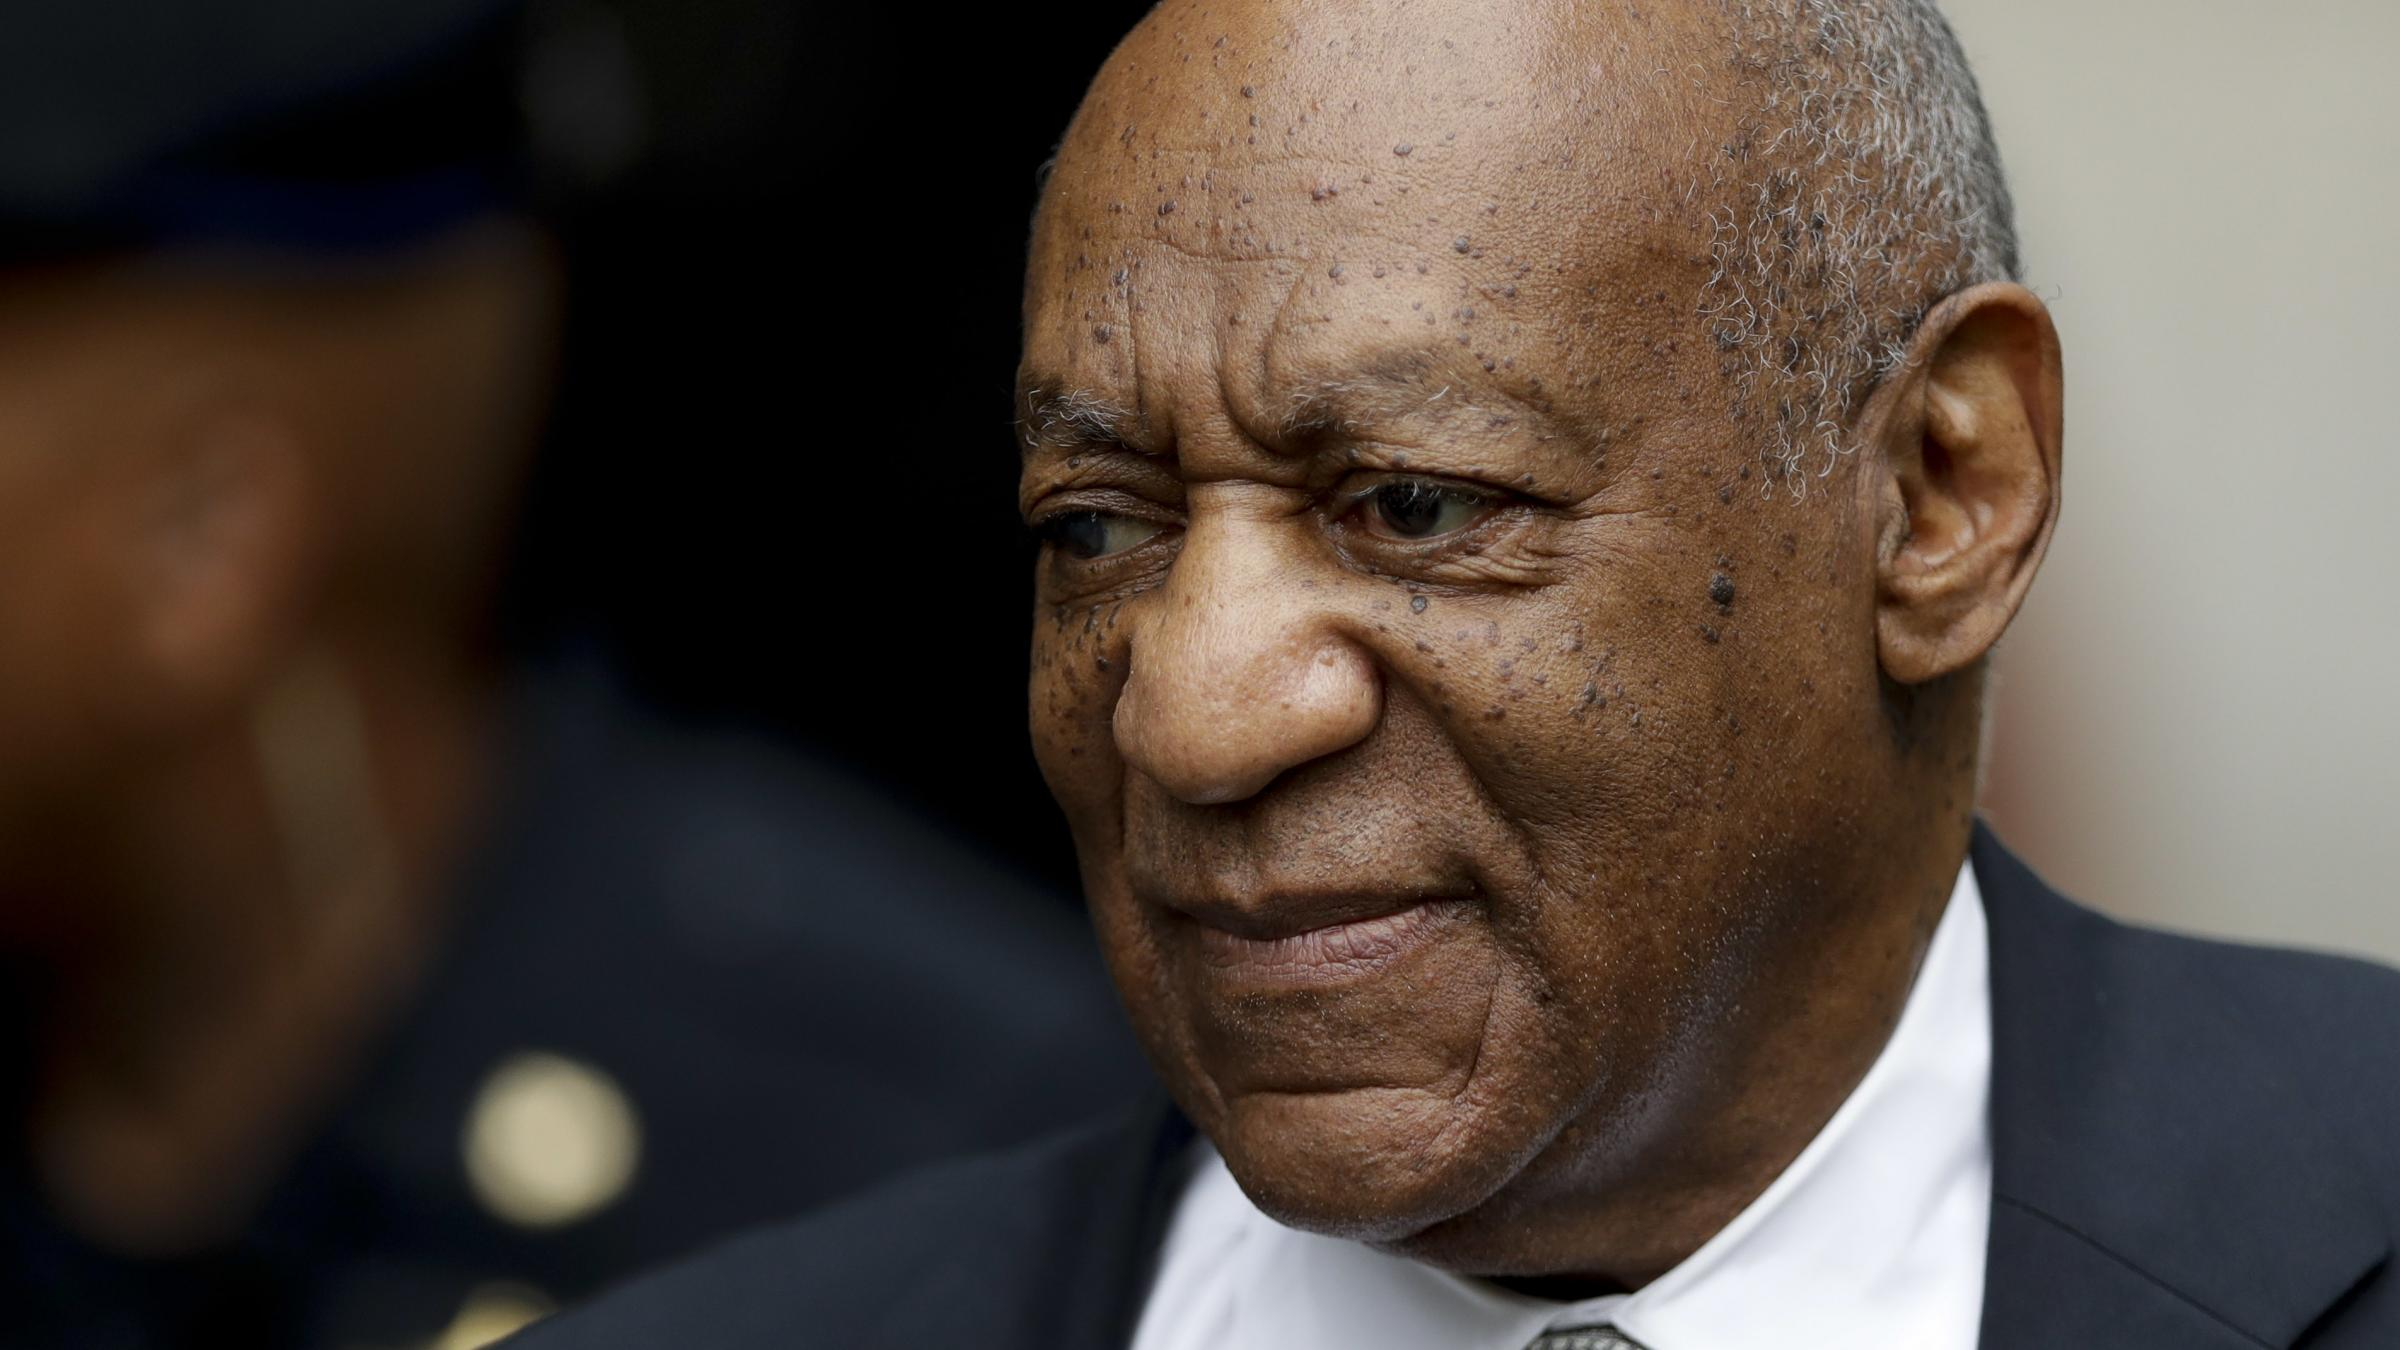 Mistrial declared in Bill Cosby criminal case